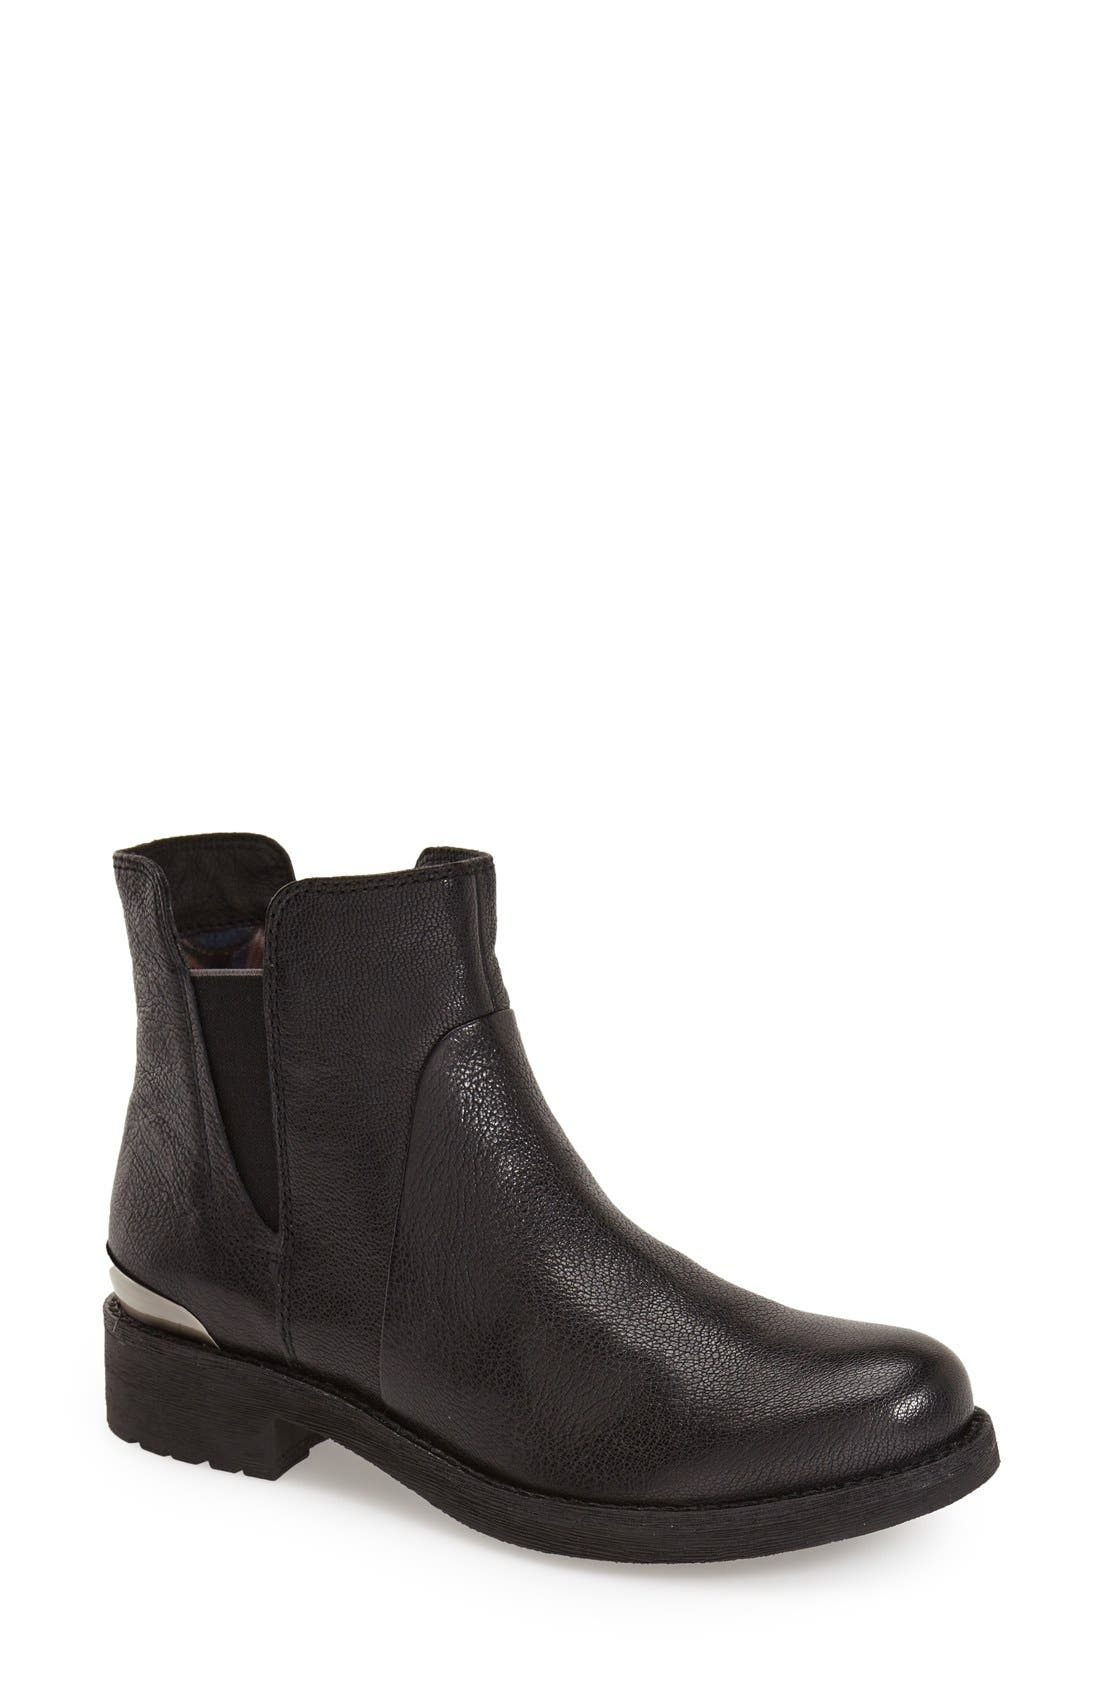 'New Virna' Chelsea Boot,                         Main,                         color, BLACK SMOOTH LEATHER